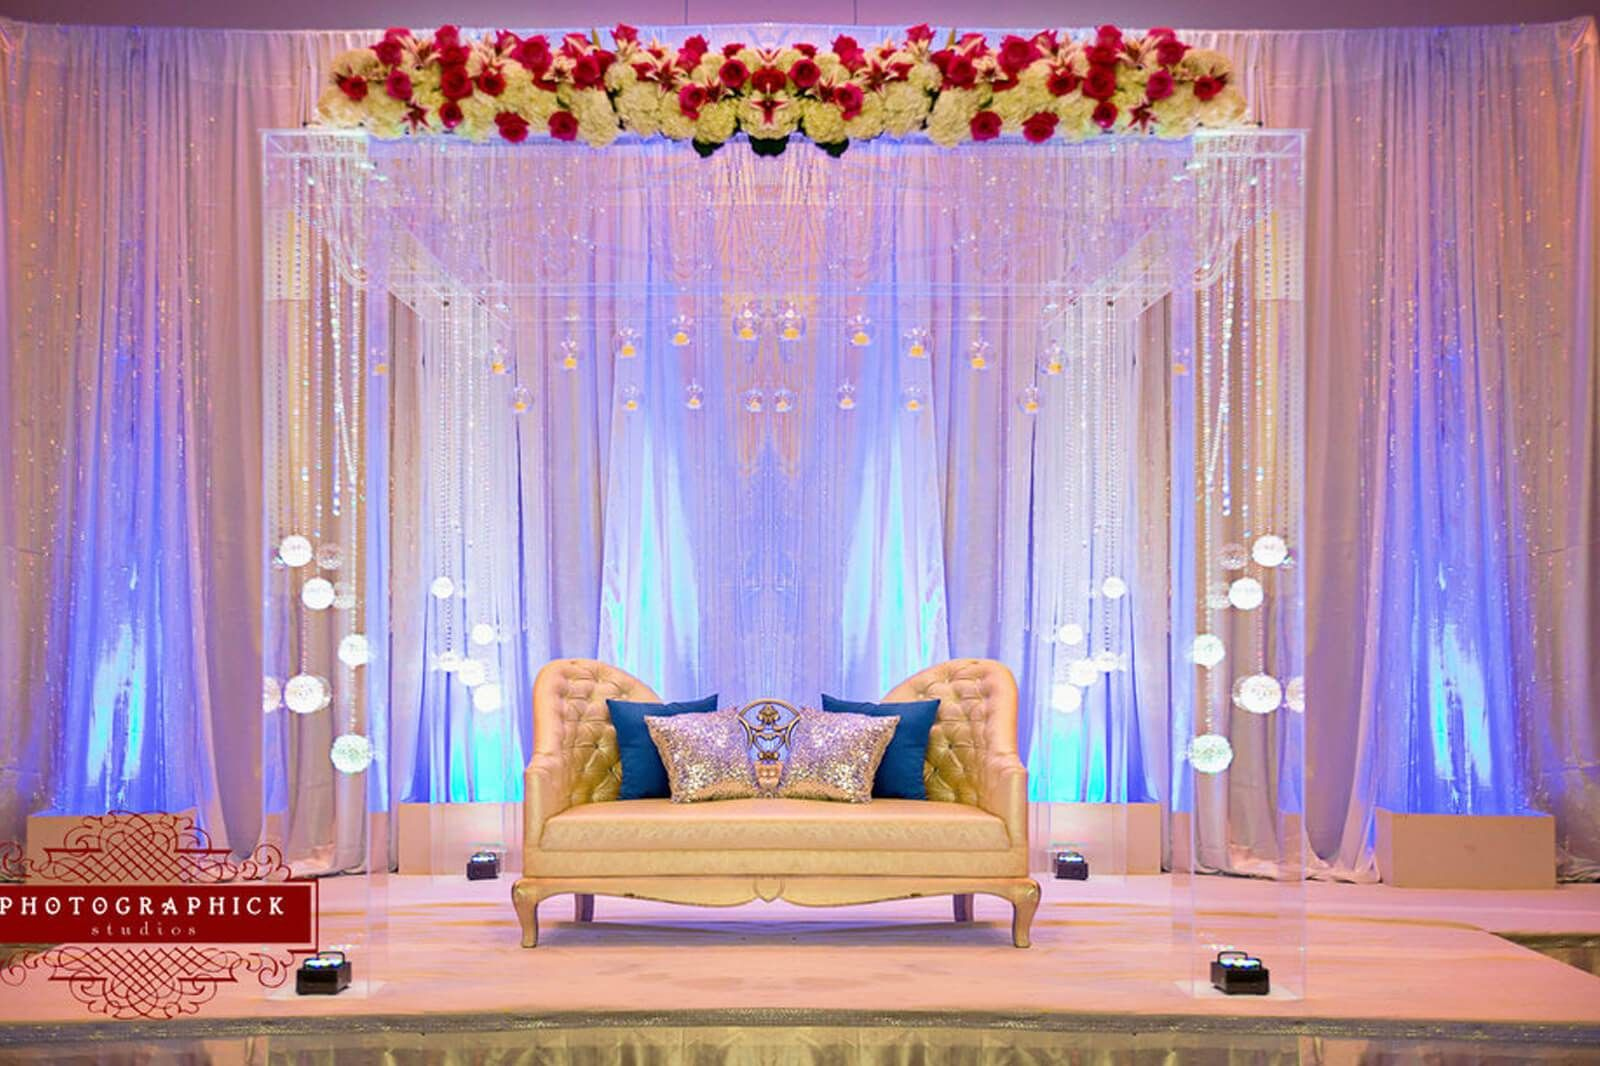 Wedding decoration stage ideas   Indian Wedding Decorations Ideas  Indian wedding decorations